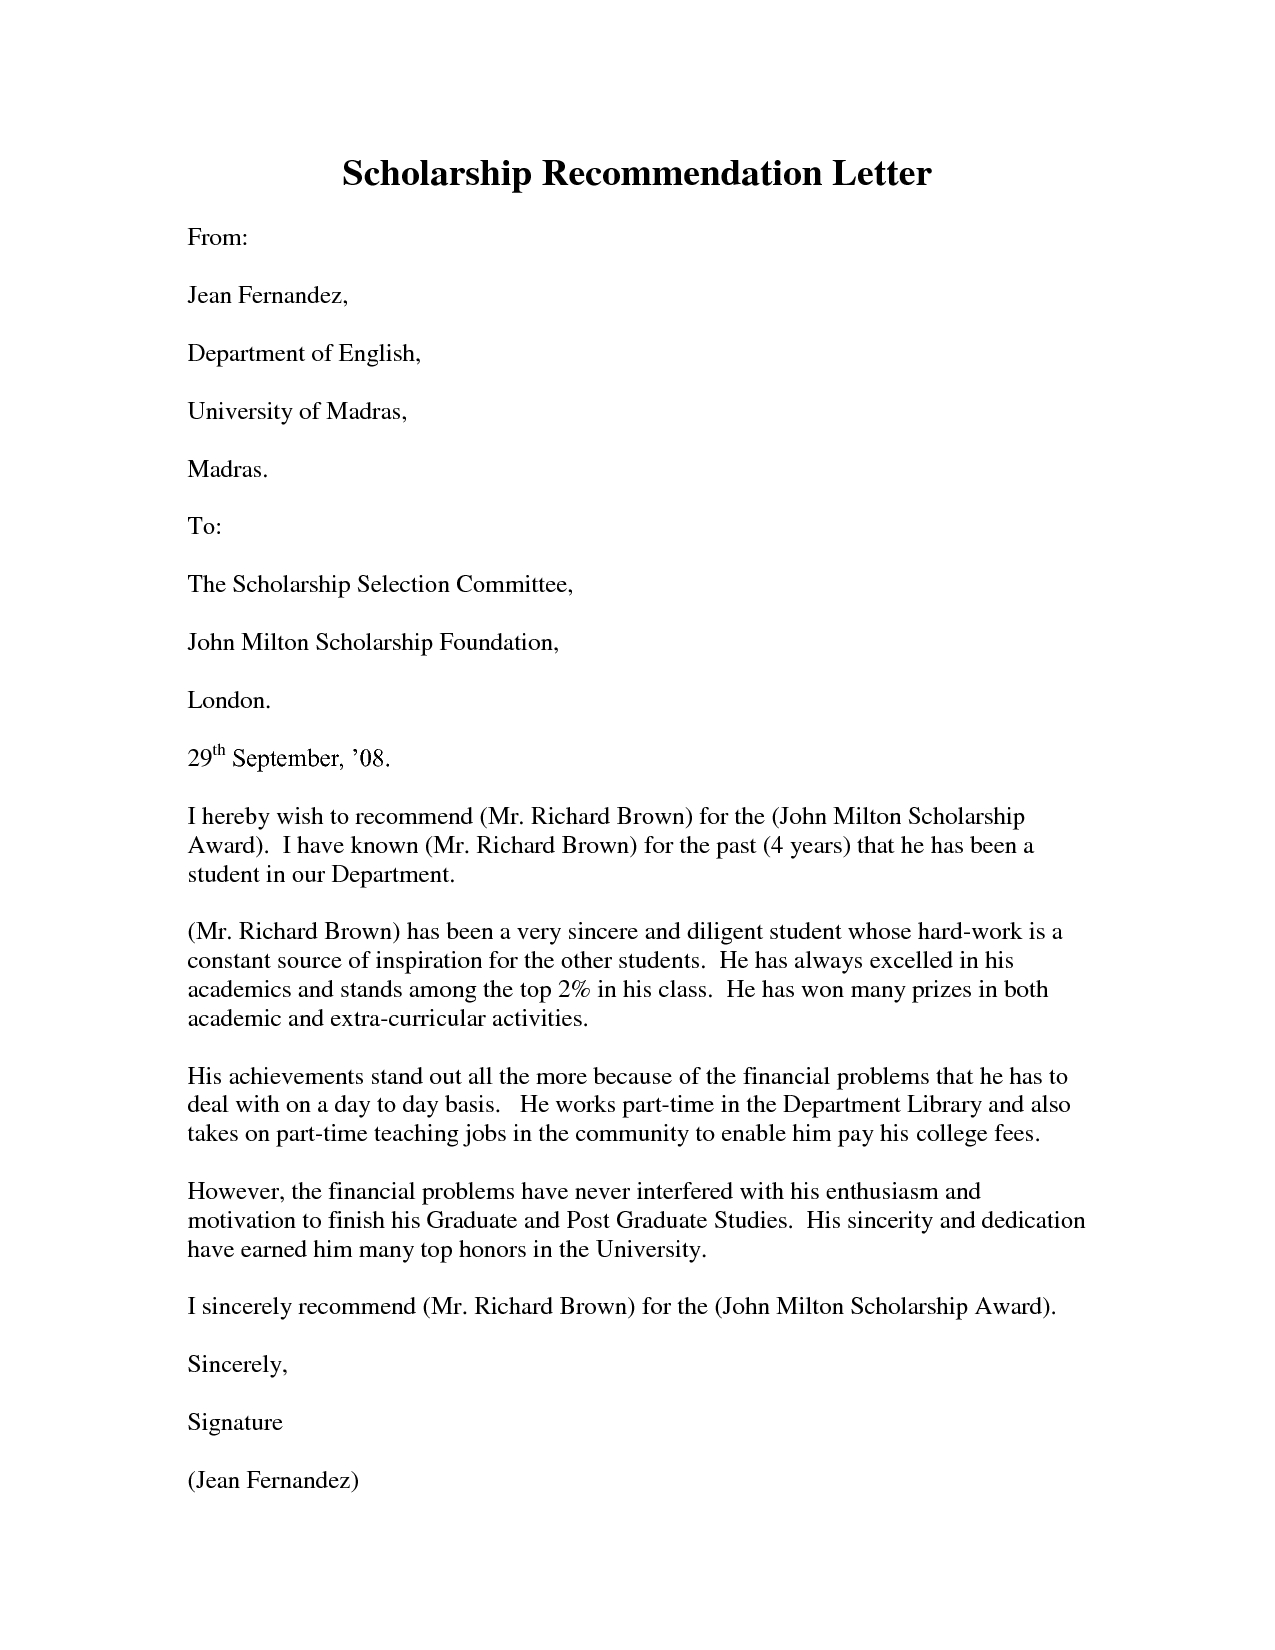 Template for Writing A Letter Of Recommendation for A Scholarship - Letter Of Re Mendation Graduate School format Acurnamedia